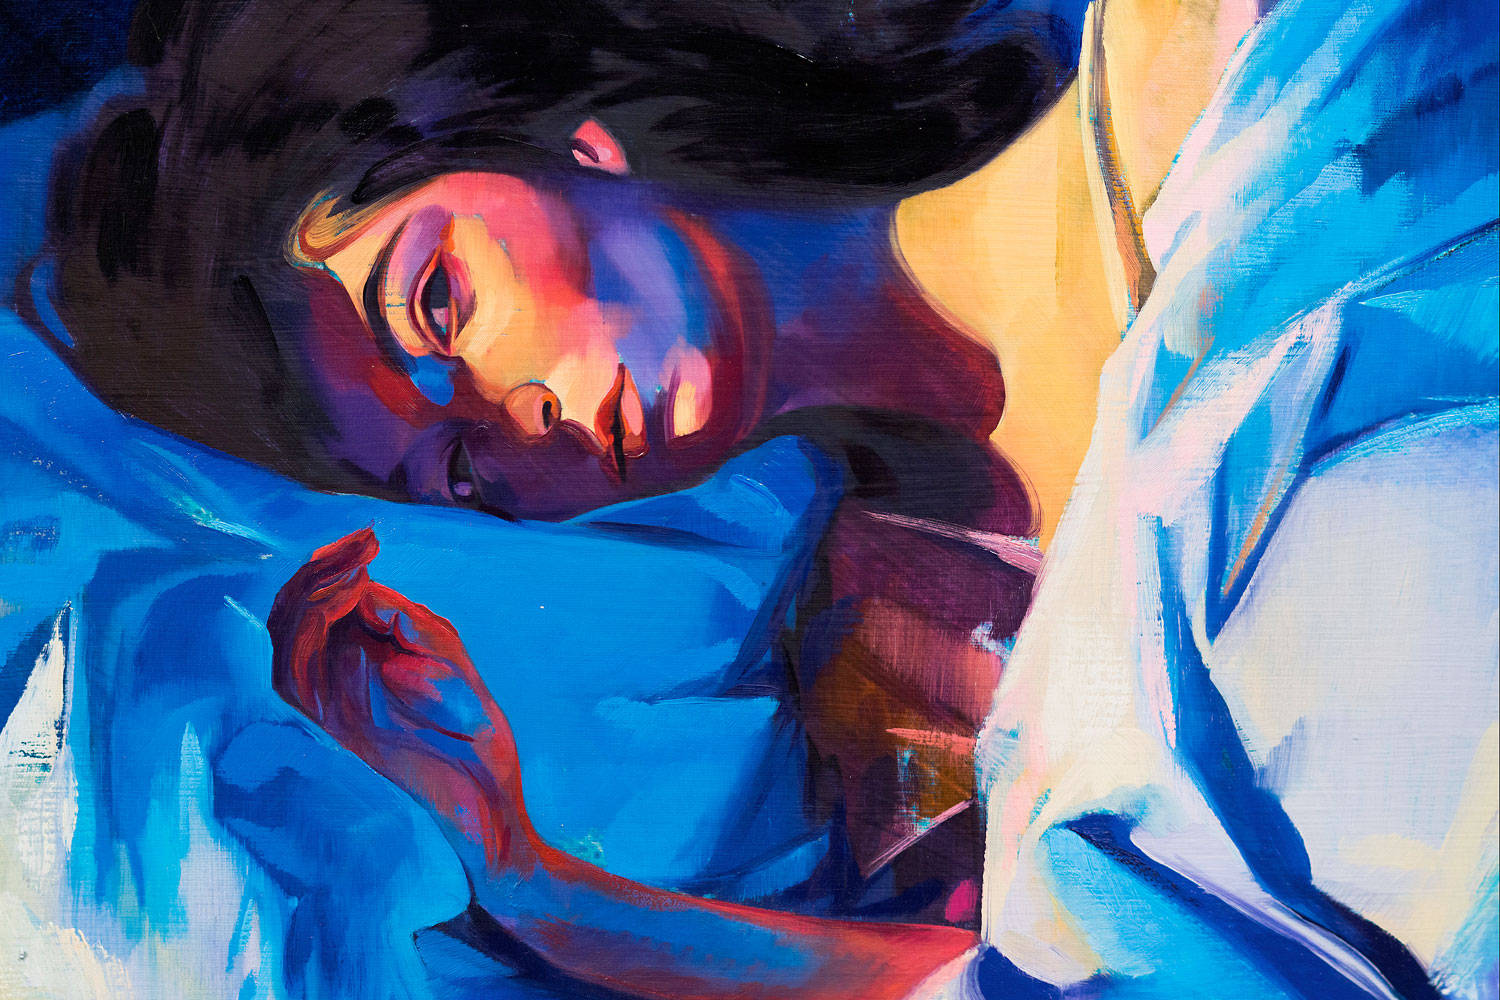 Album of the Day: Lorde – Melodrama